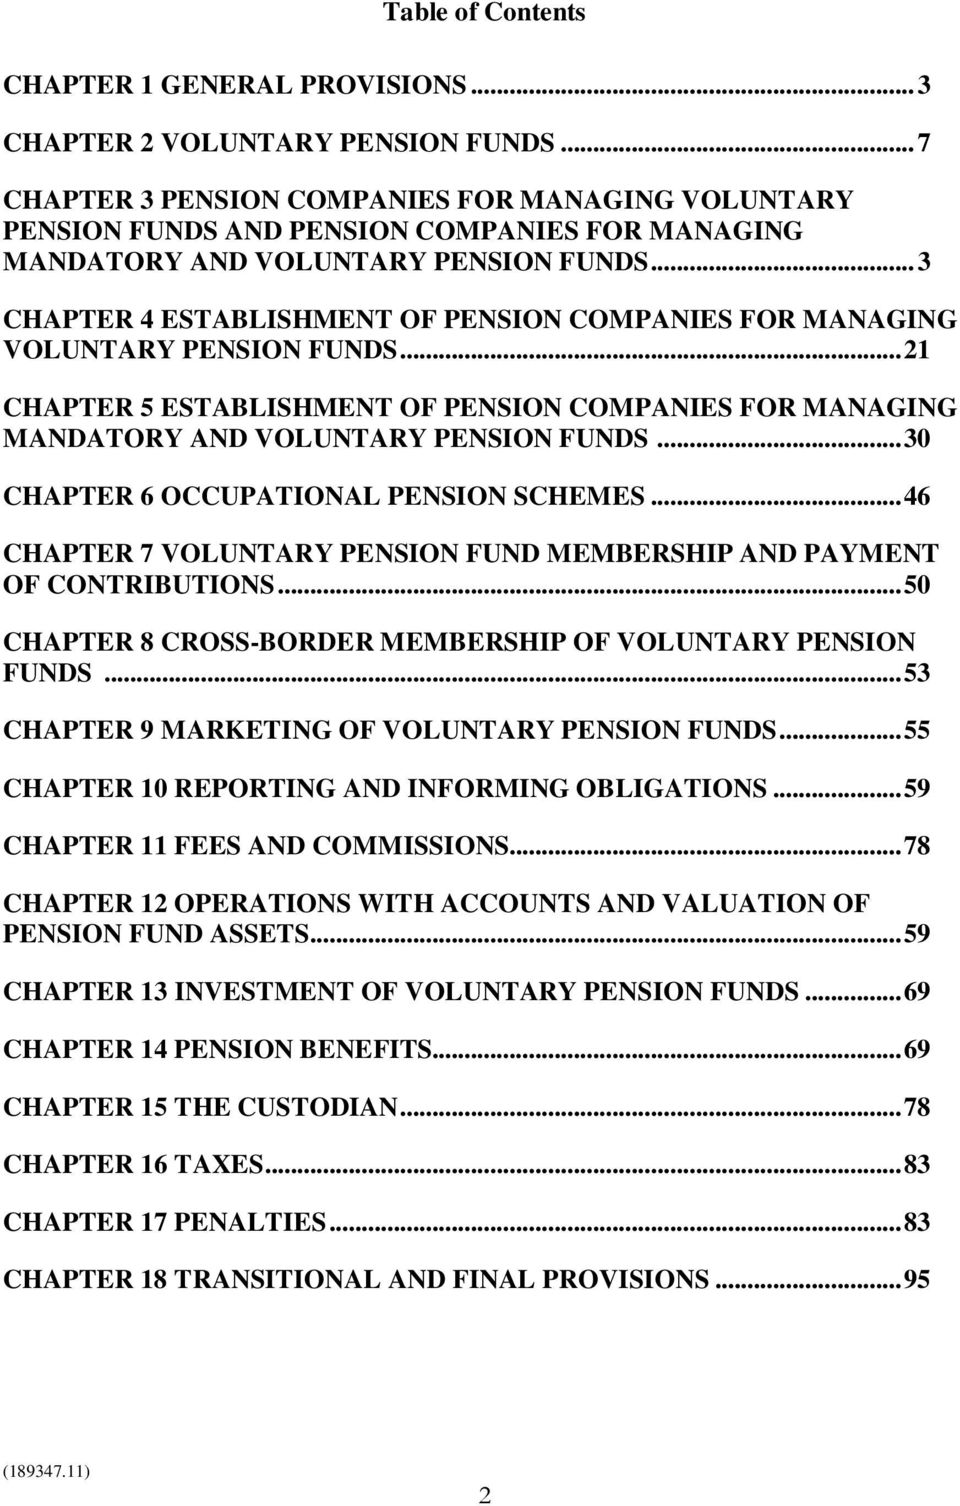 .. 3 CHAPTER 4 ESTABLISHMENT OF PENSION COMPANIES FOR MANAGING VOLUNTARY PENSION FUNDS... 21 CHAPTER 5 ESTABLISHMENT OF PENSION COMPANIES FOR MANAGING MANDATORY AND VOLUNTARY PENSION FUNDS.